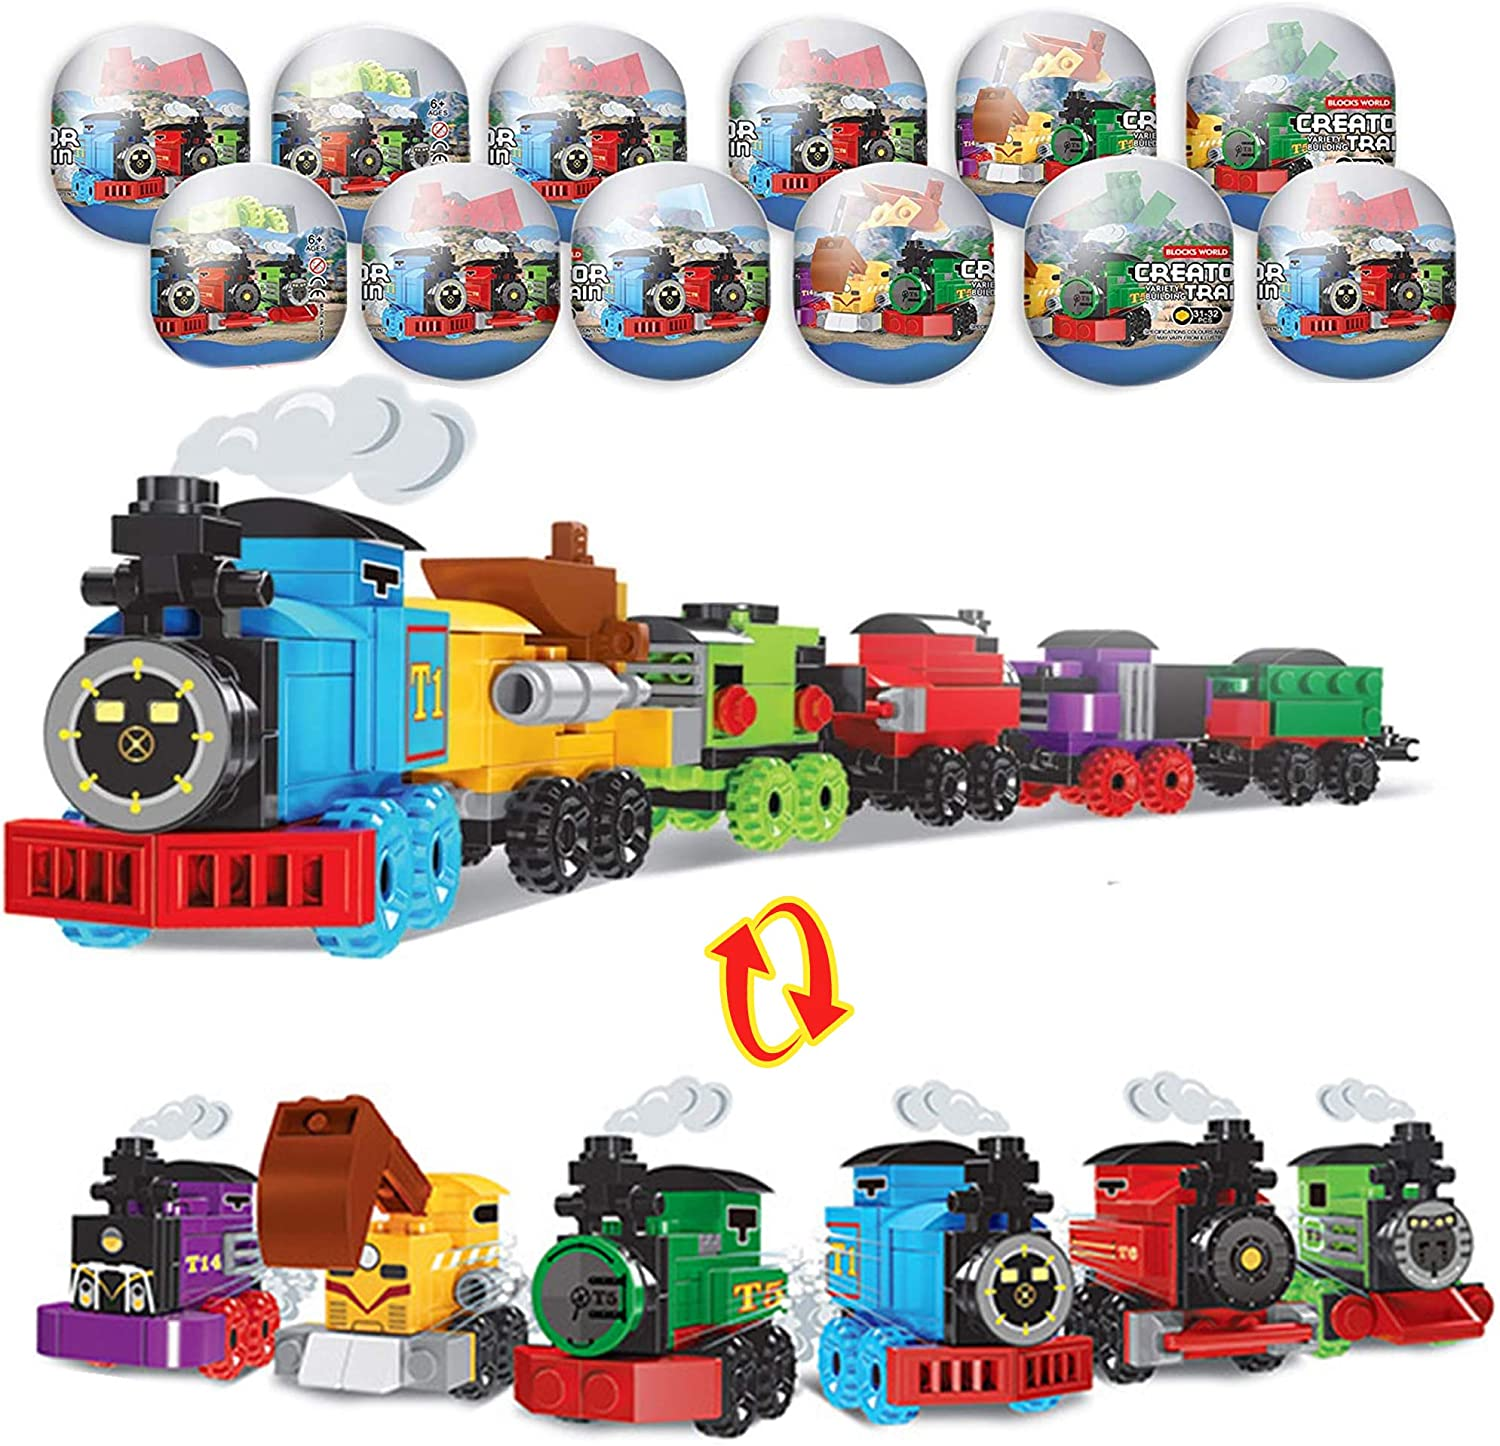 12 Pcs Easter Eggs with Train Building Blocks Toys for Easter Basket Stuffers Easter Eggs Easter Party Favors